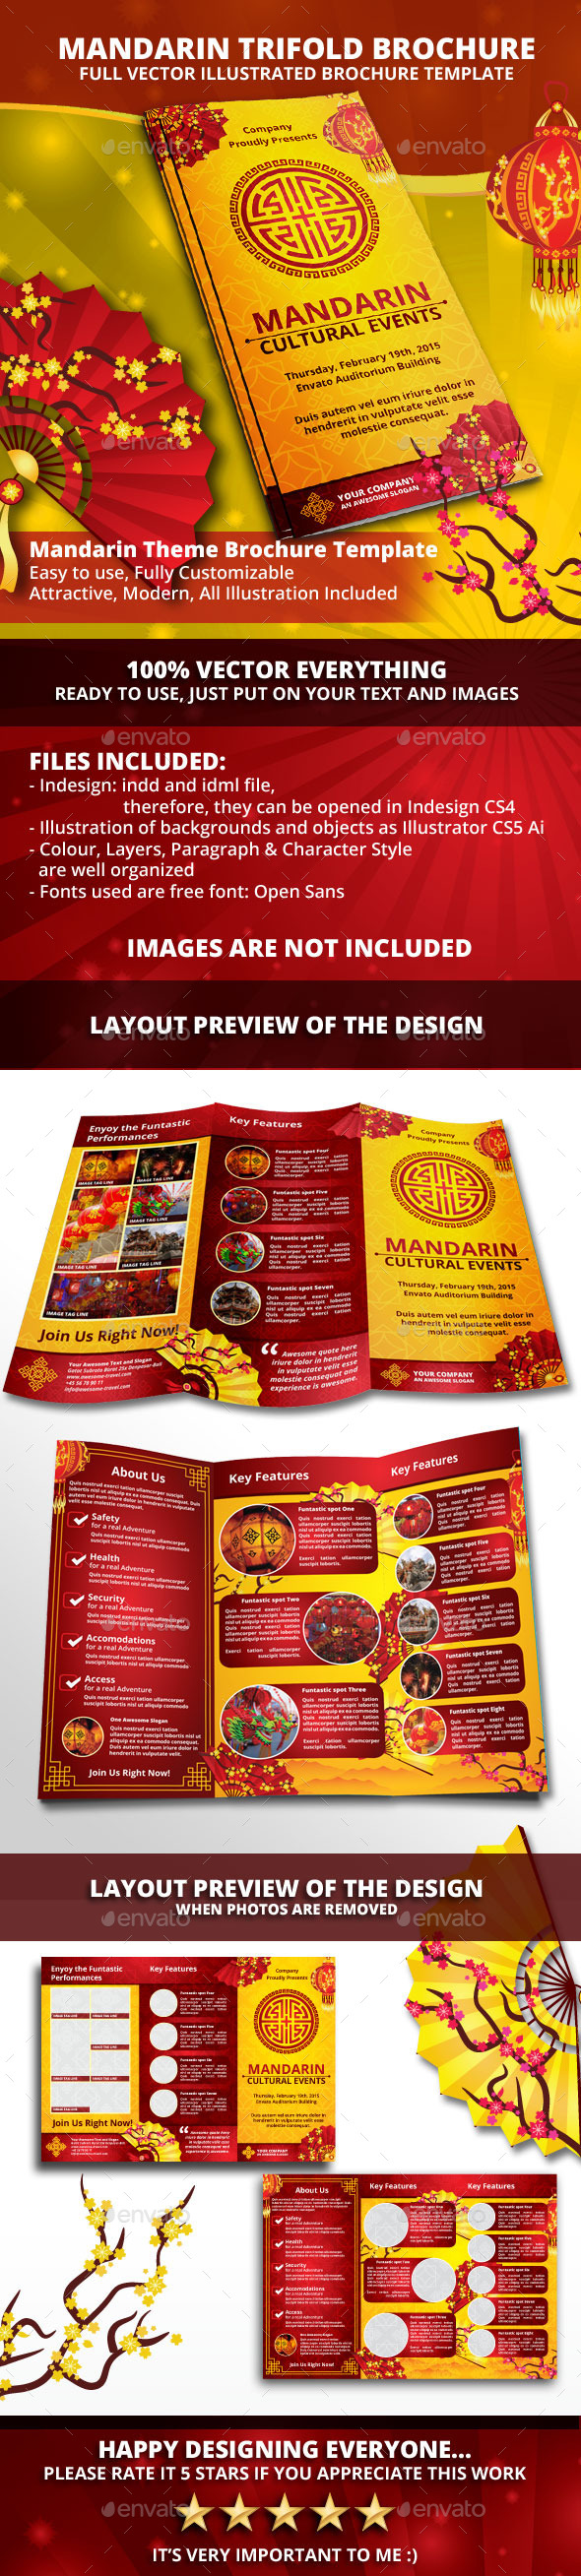 Mandarin - Chinese Trifold Brochue Template - Informational Brochures